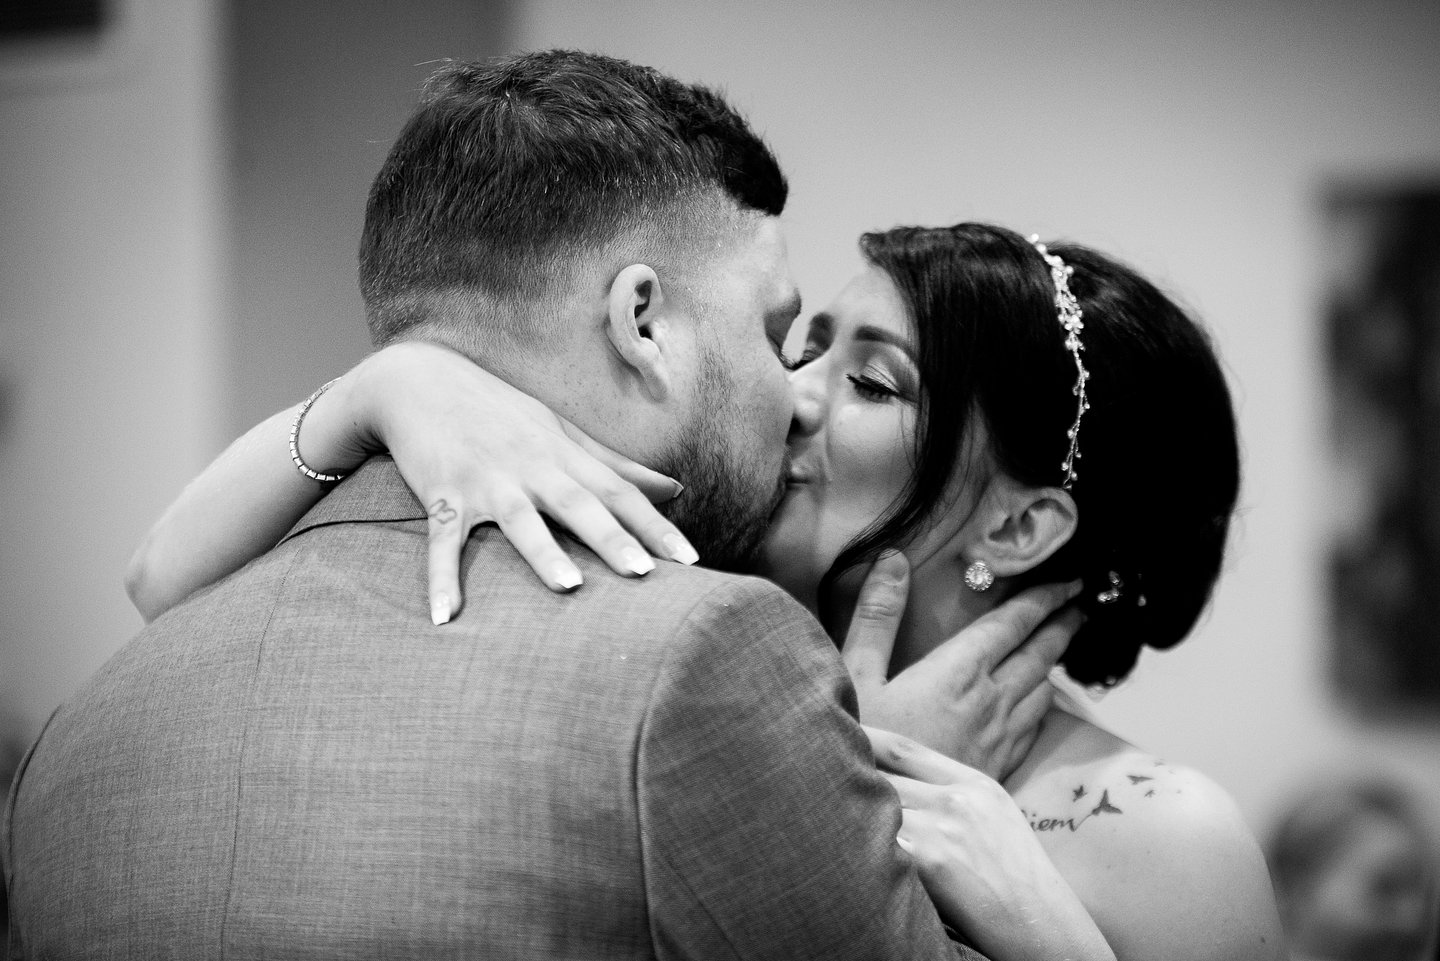 Rebecca and Scott's Wedding 5 August 2017